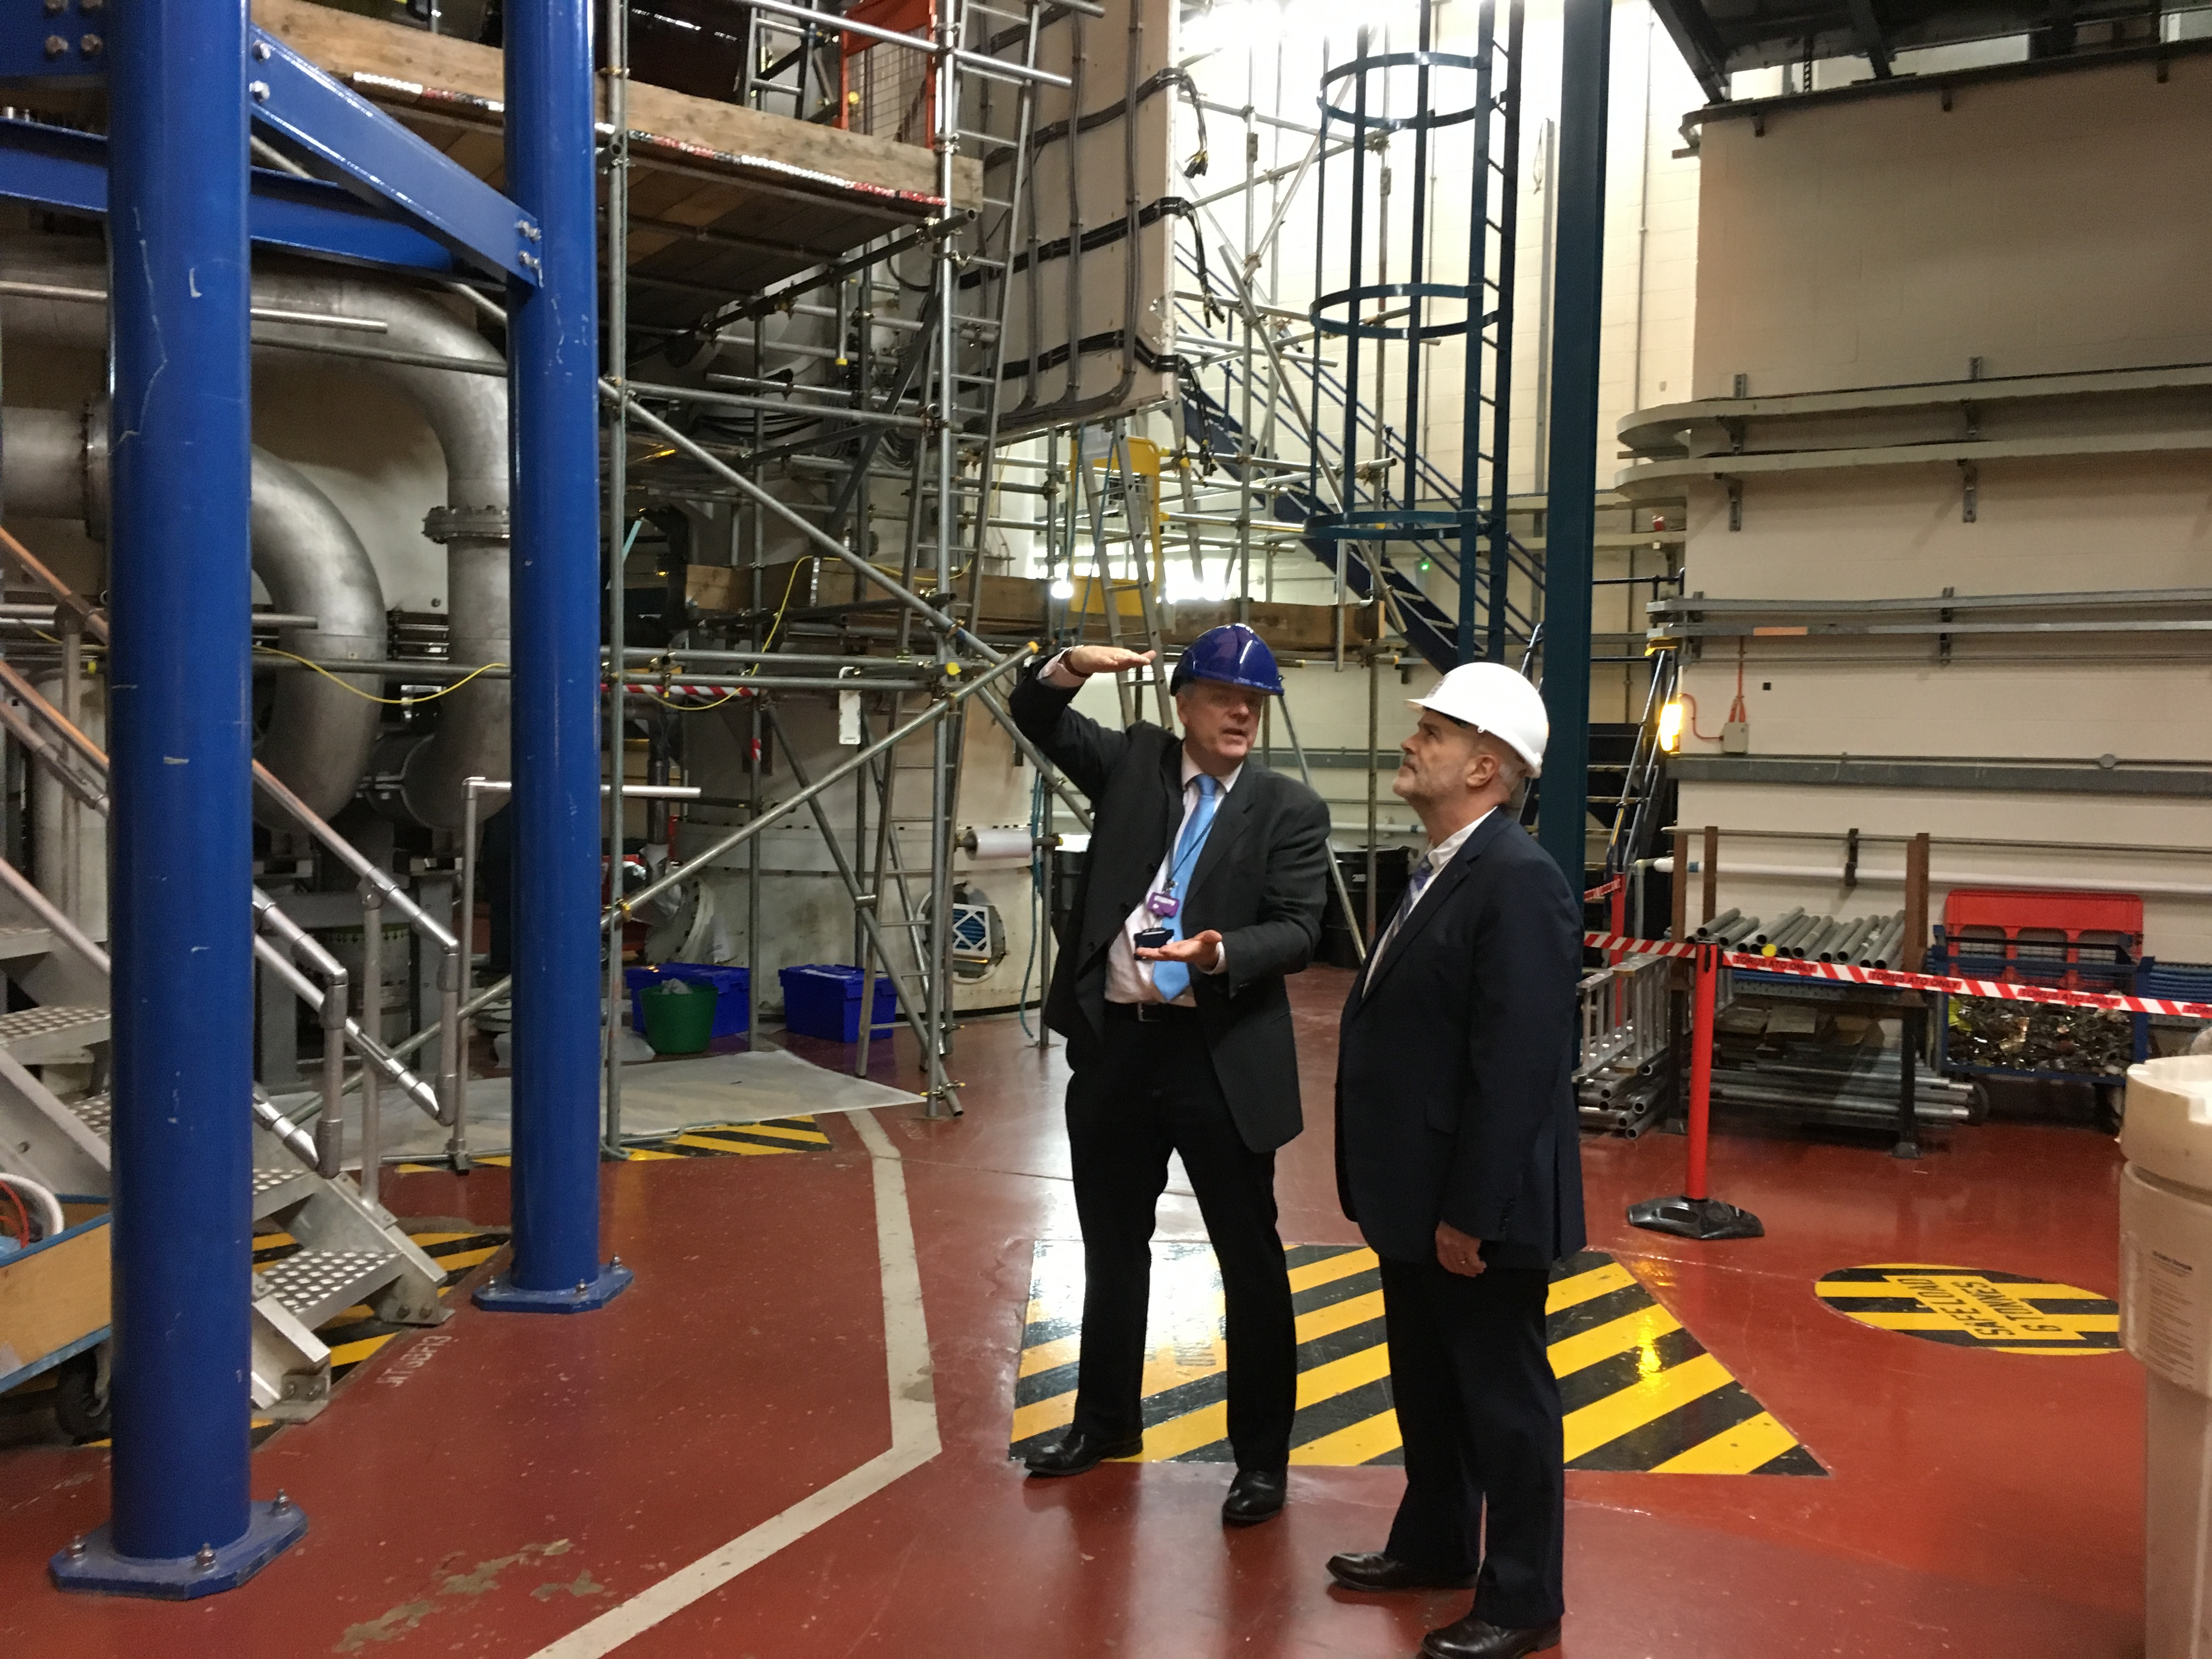 John visits Culham and calls for assurances over future of fusion research